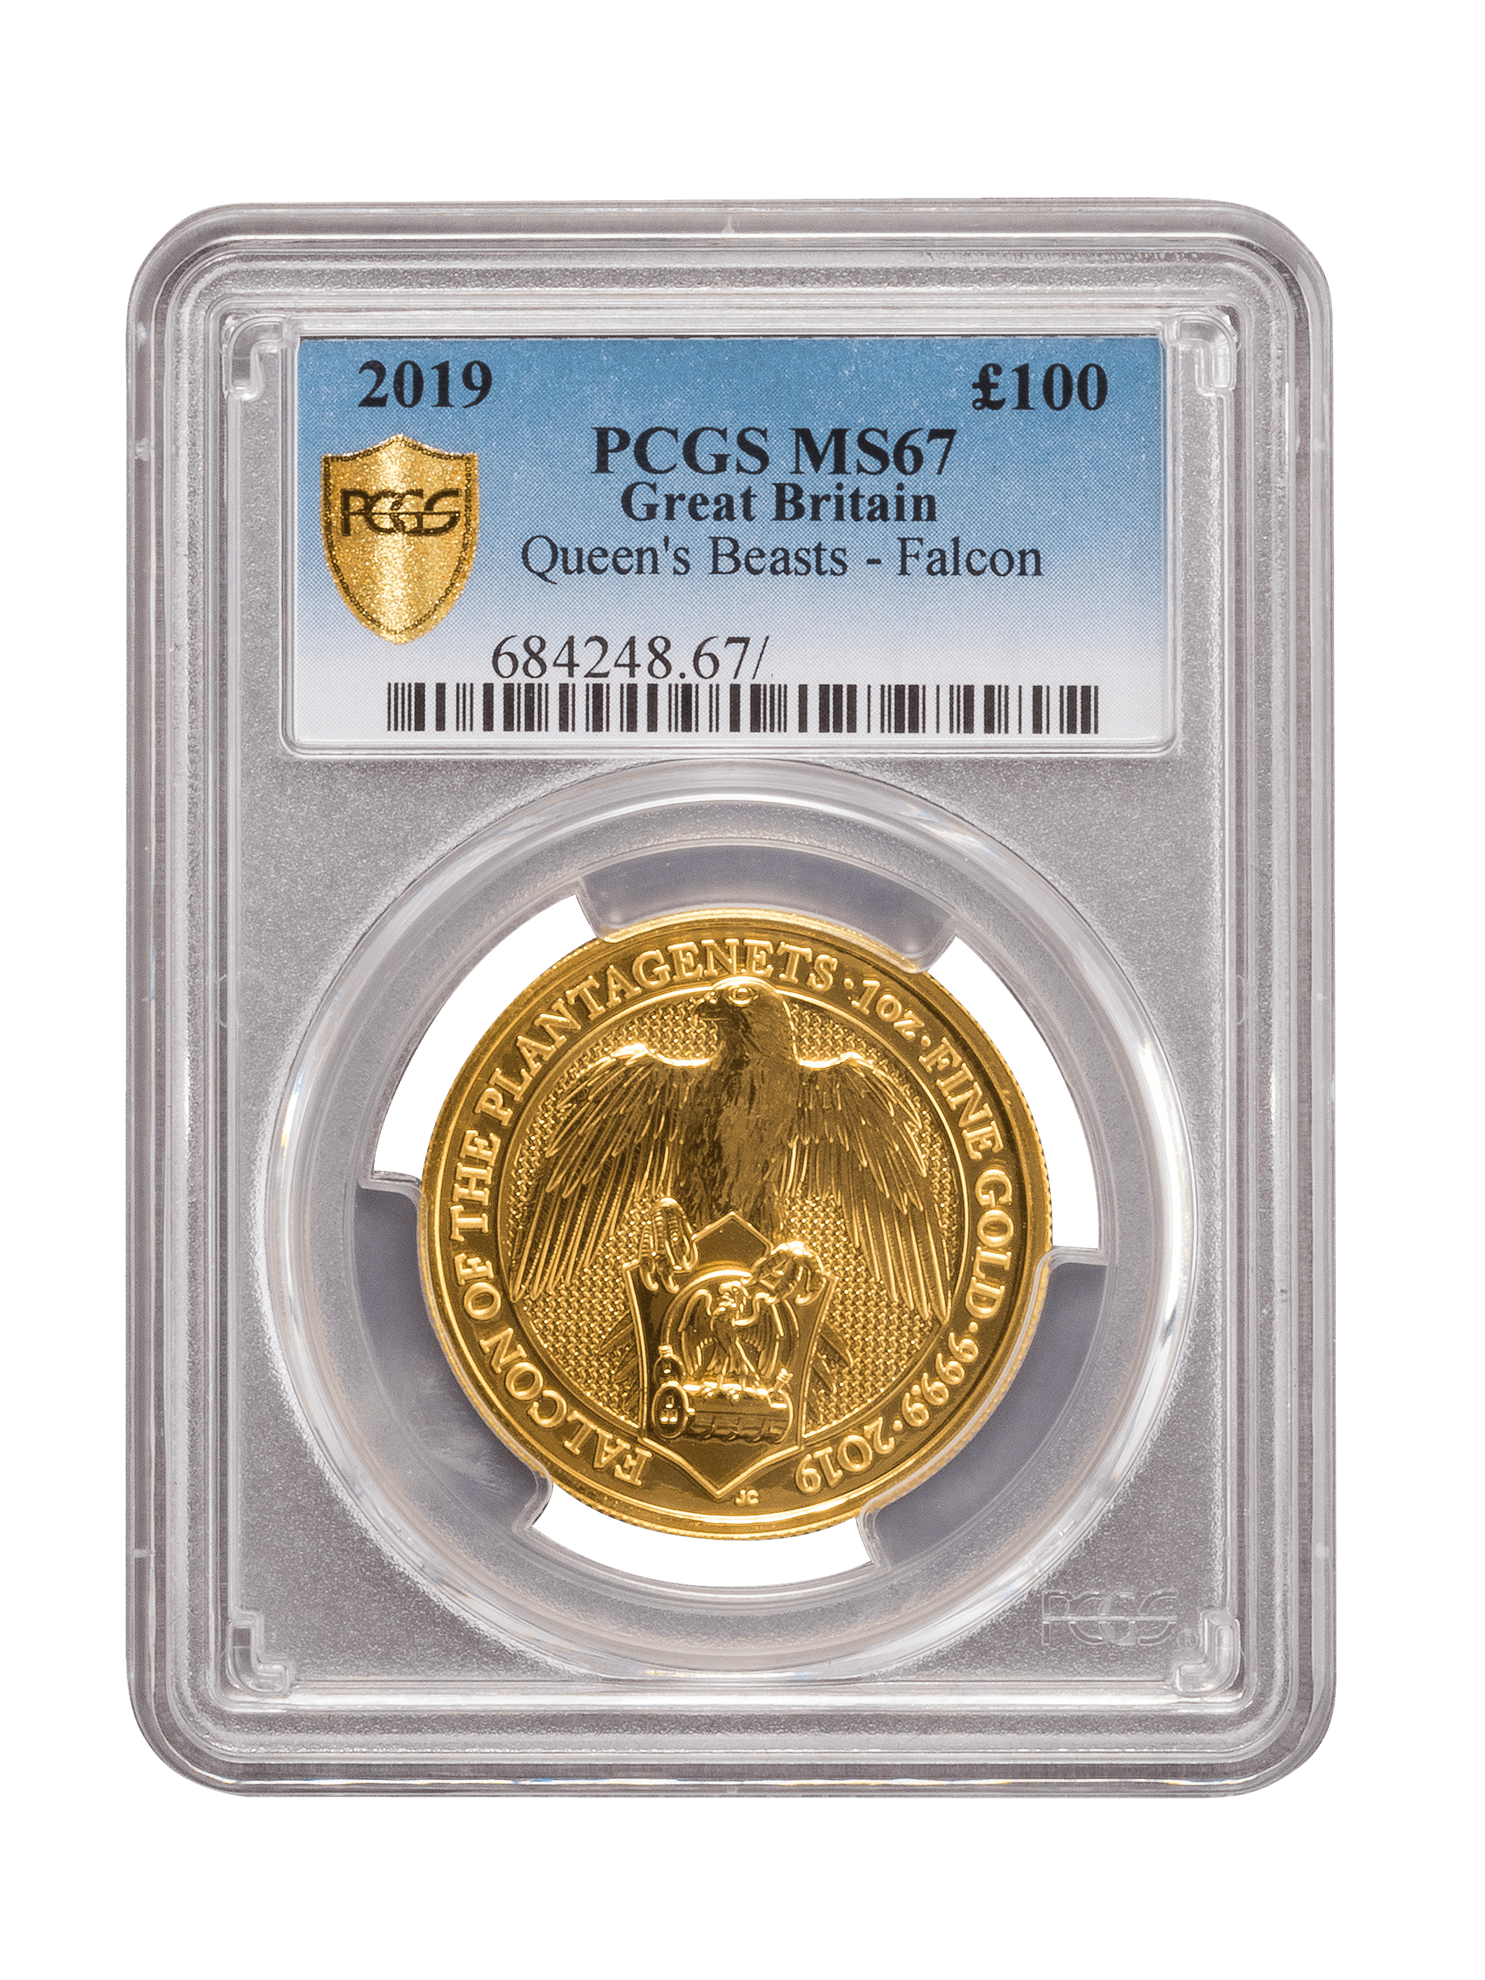 Picture of PCGS 2019 1oz Gold Queen's Beast 'Falcon' MS67